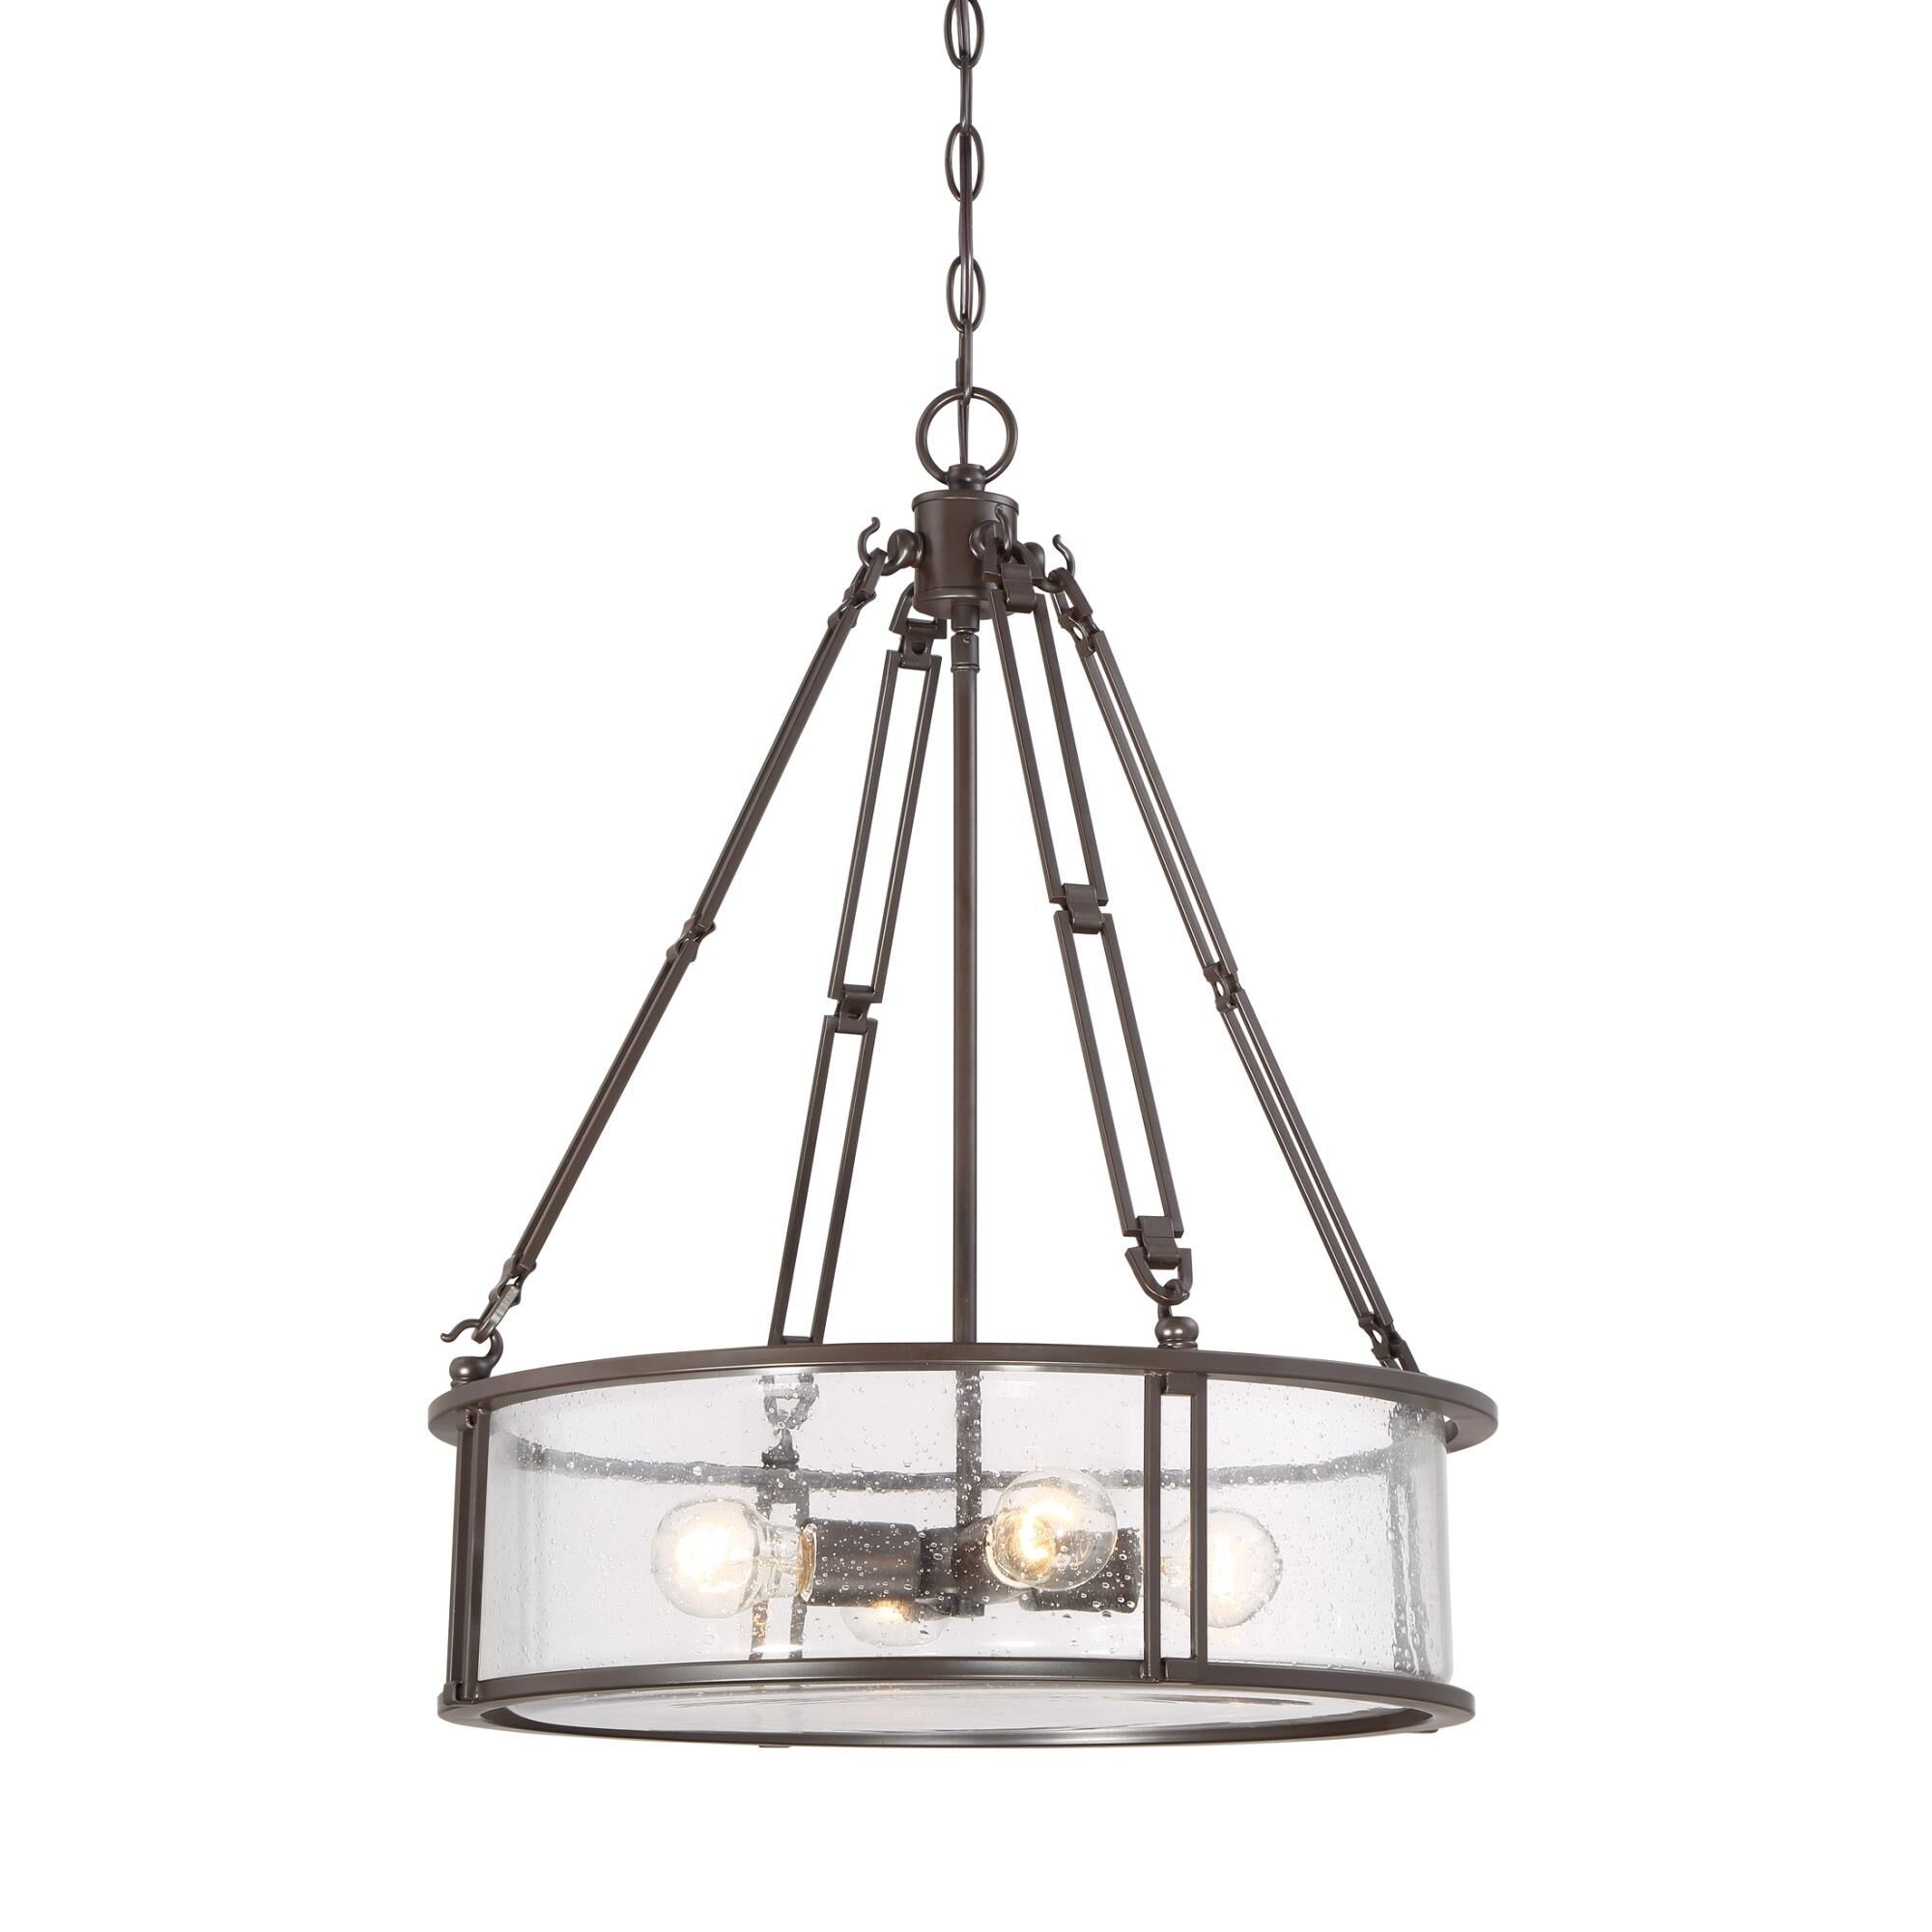 Farmhouse Lighting Pendants Quoizel Buchanan 20 Inch